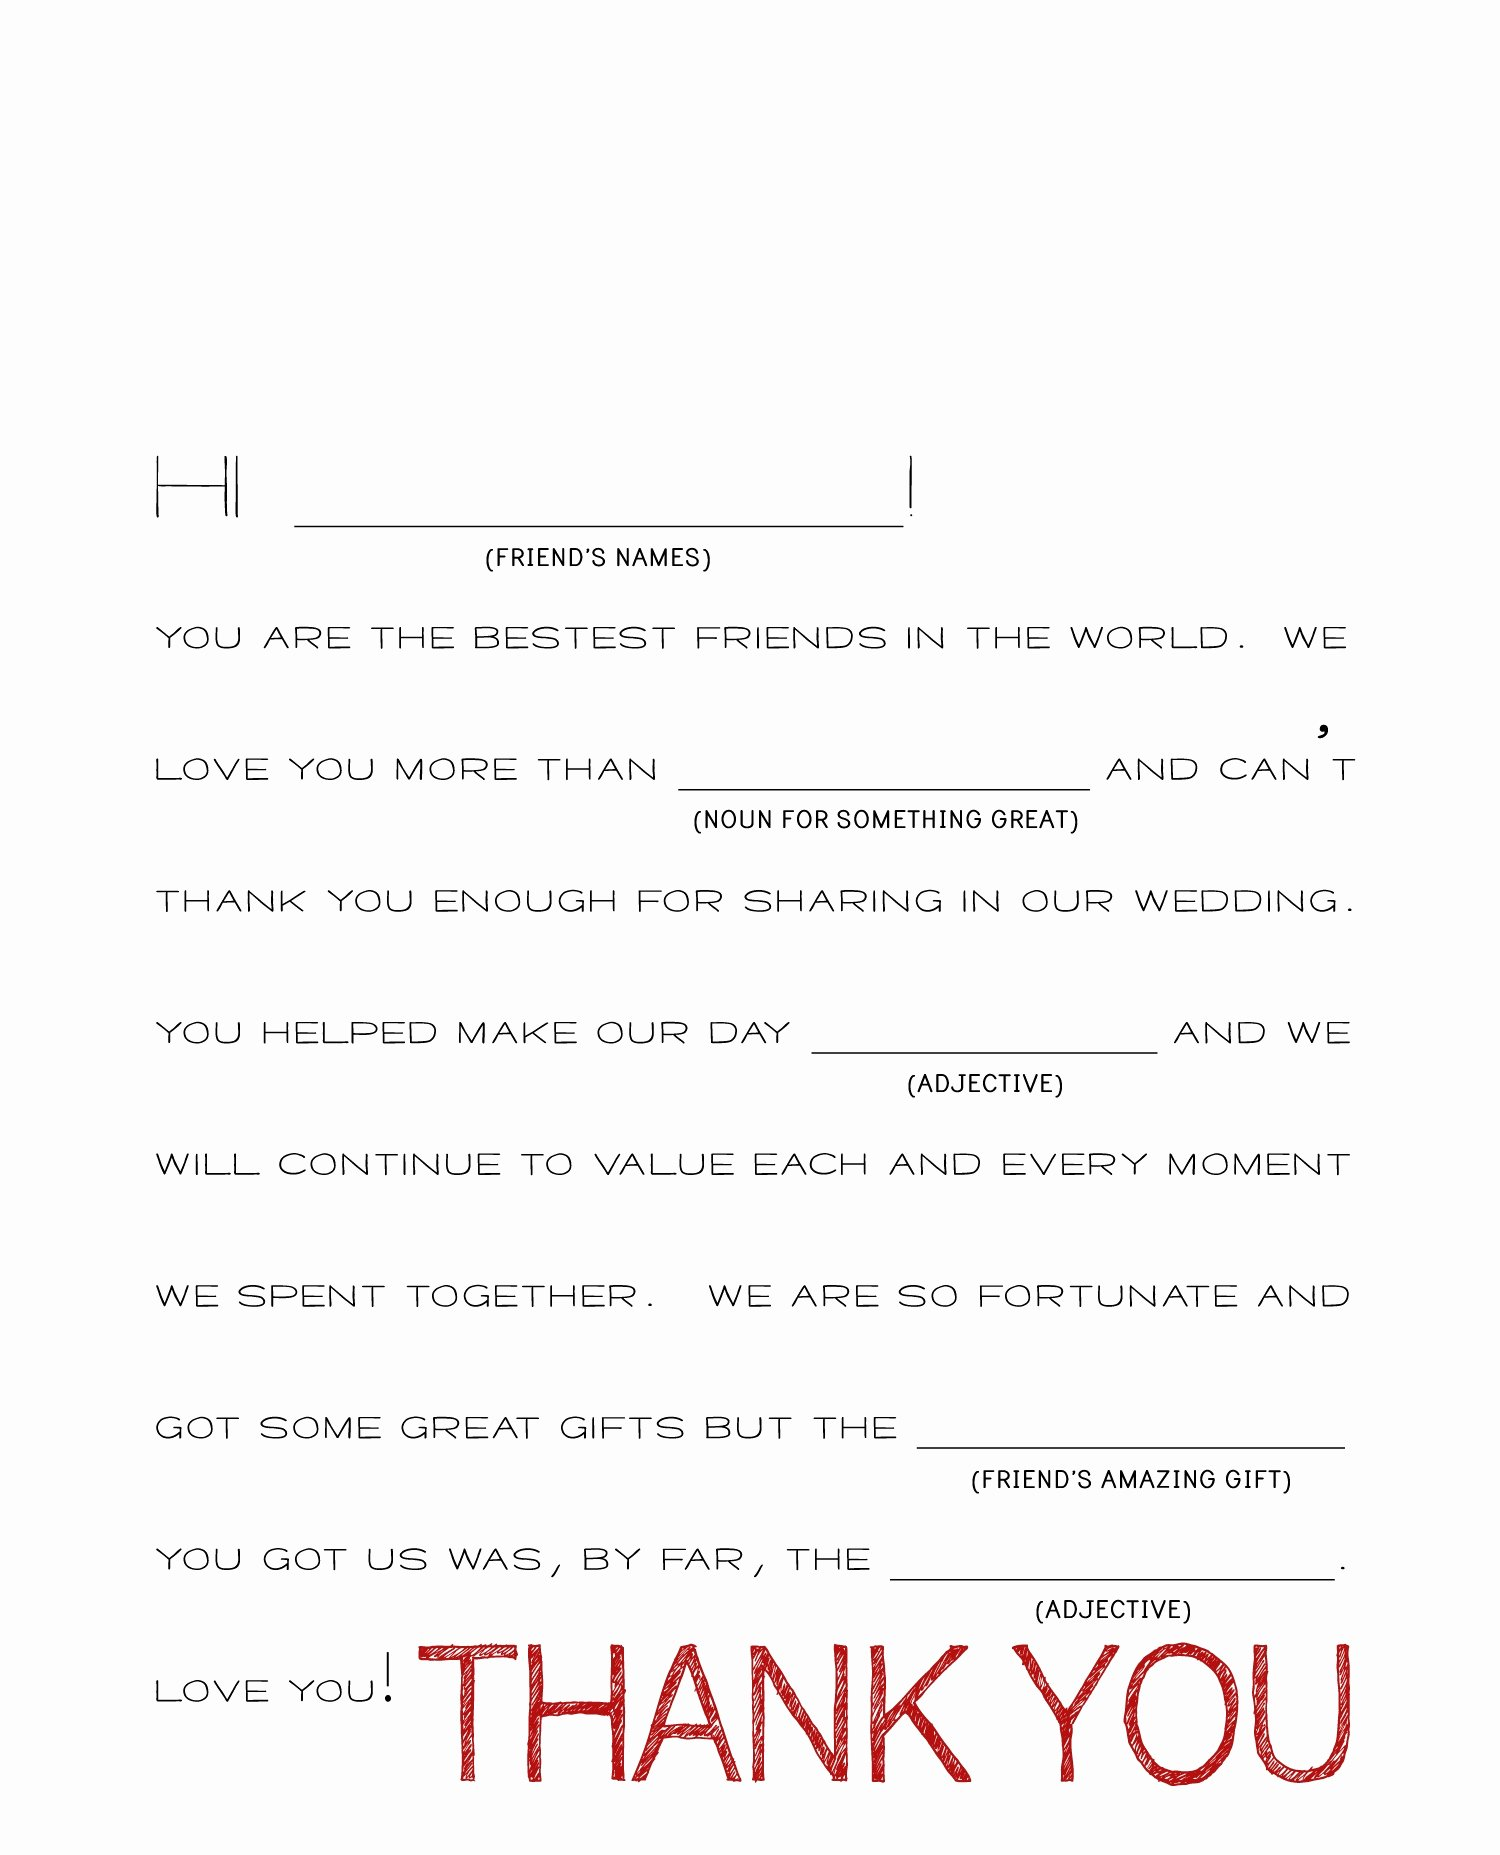 Bridal Shower Thank You Examples Beautiful ashley Brooke Designs Wedding Image